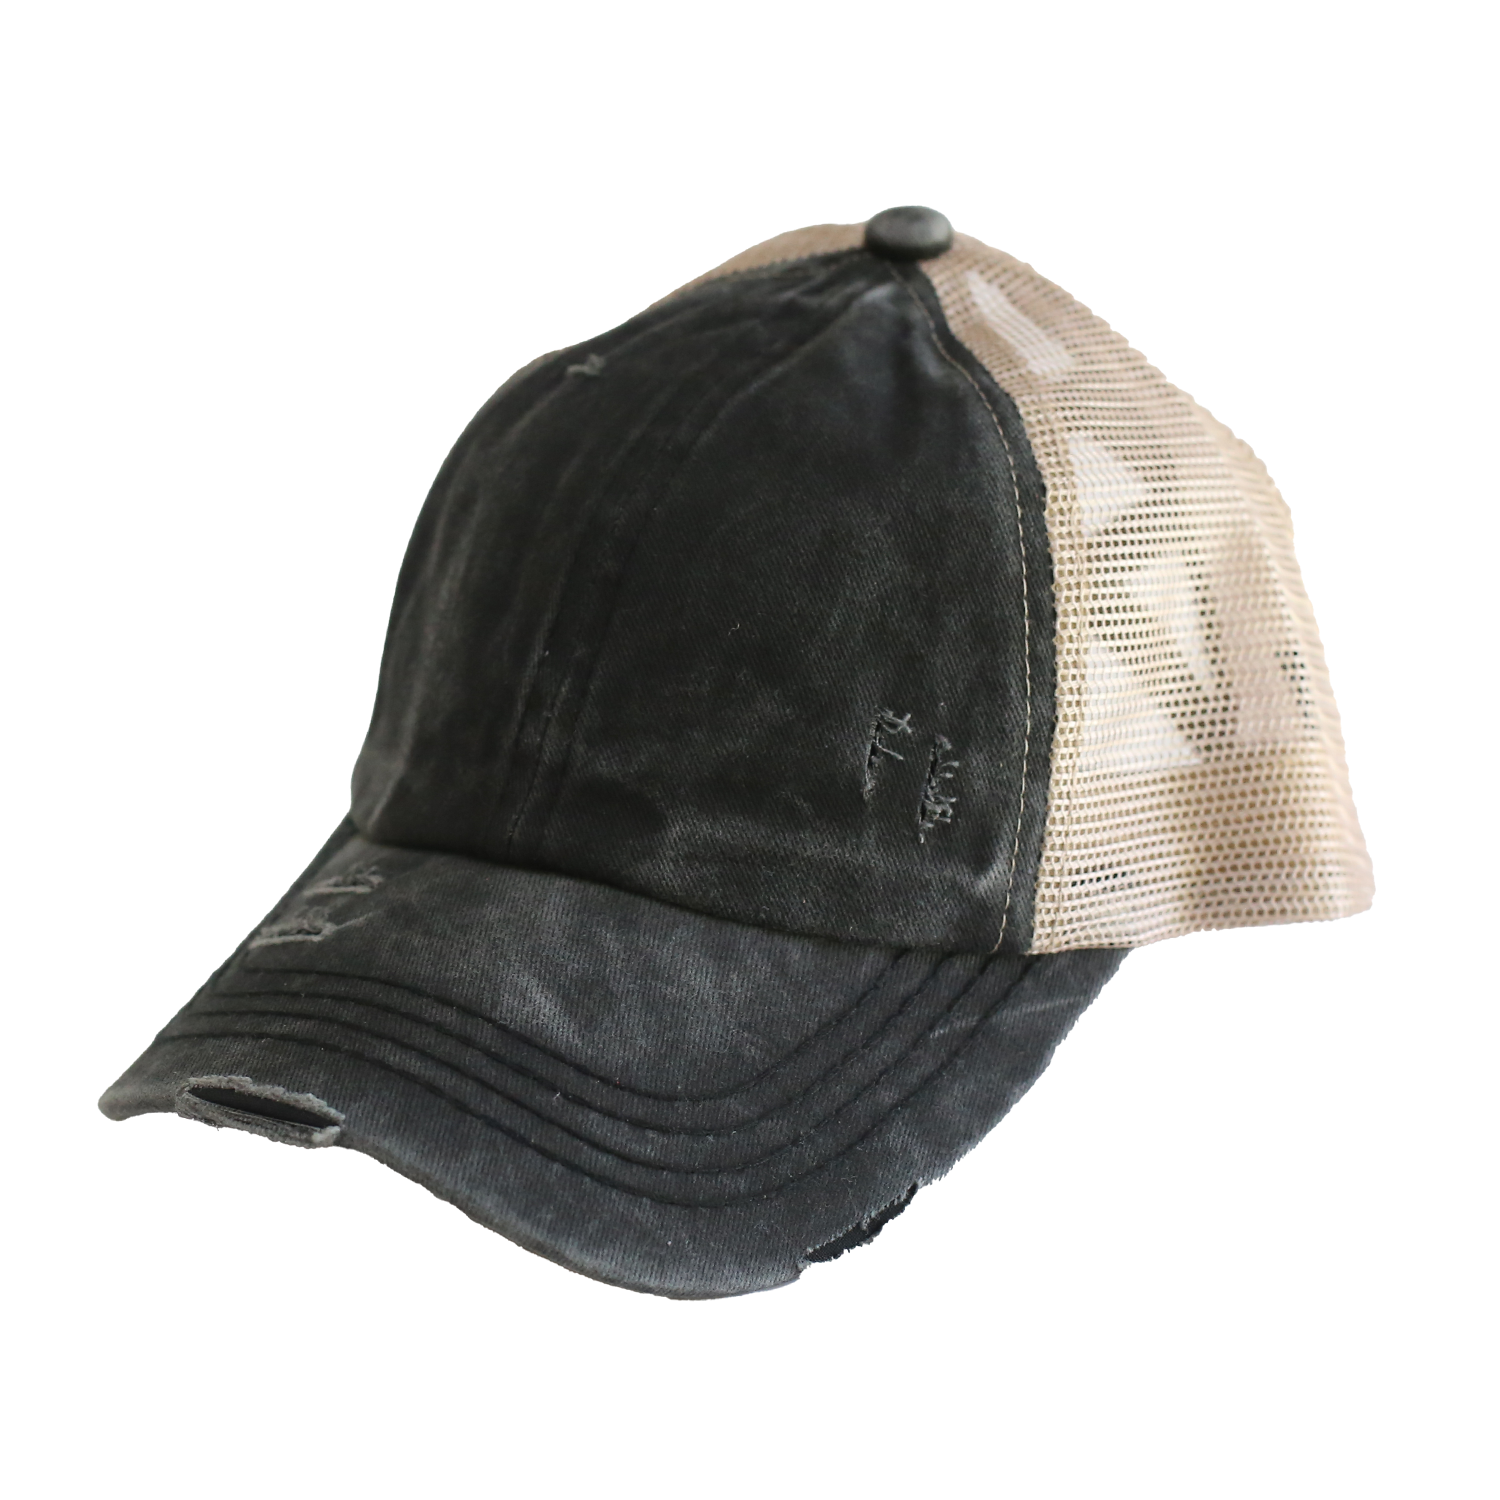 BT-780 C.C Criss Cross Pony Cap BLACK/BIEGE